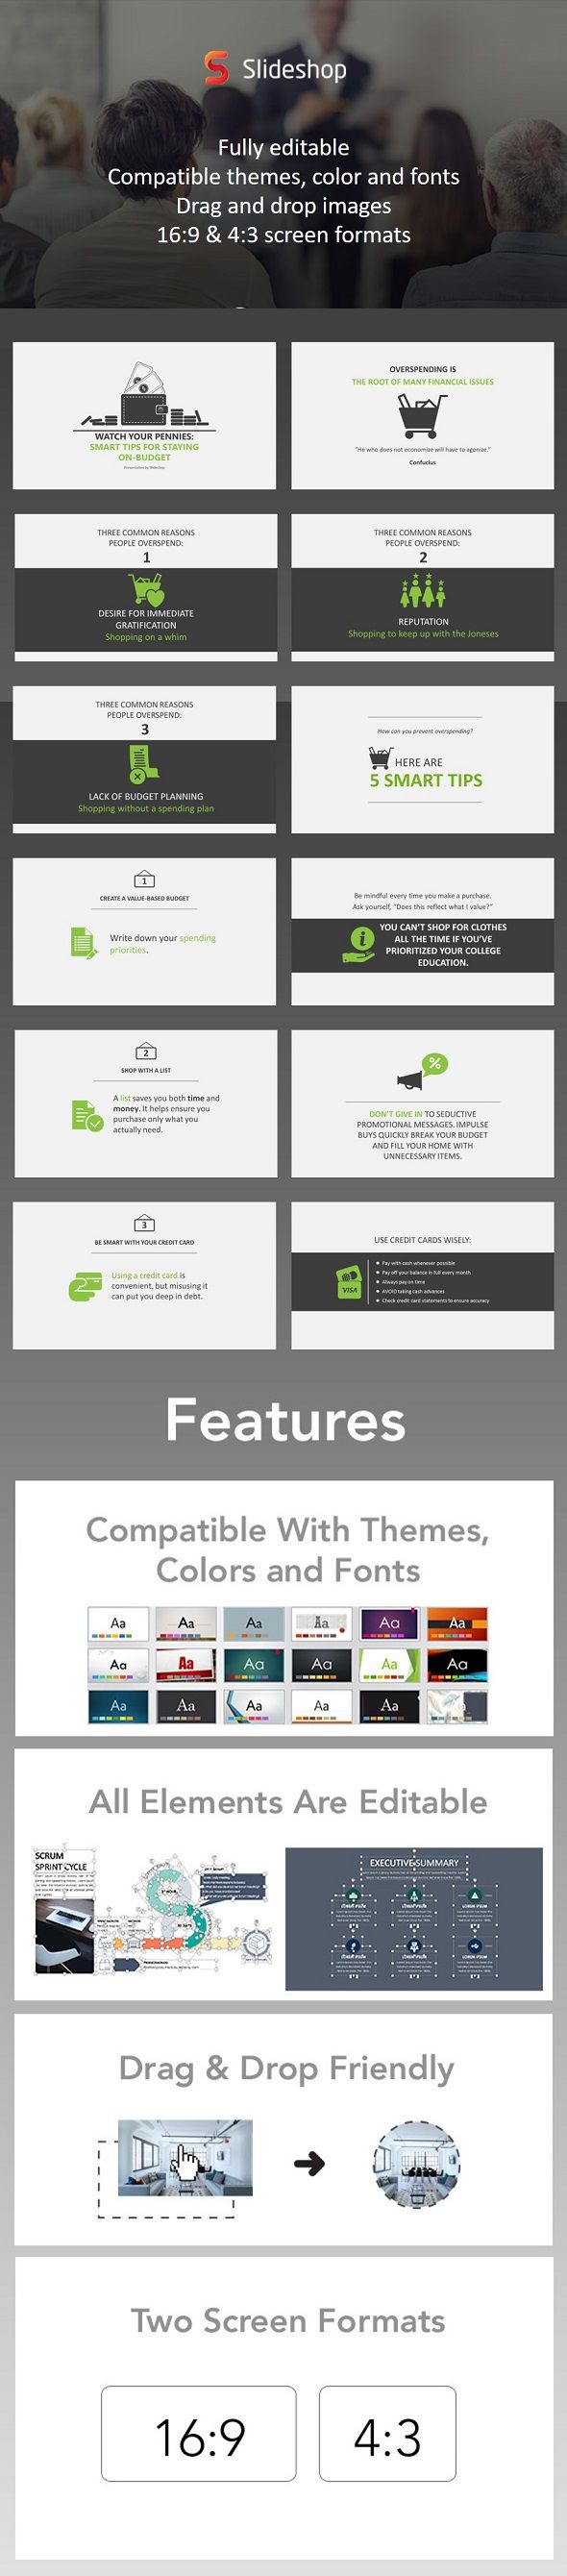 budget powerpoint templates presentation templates download